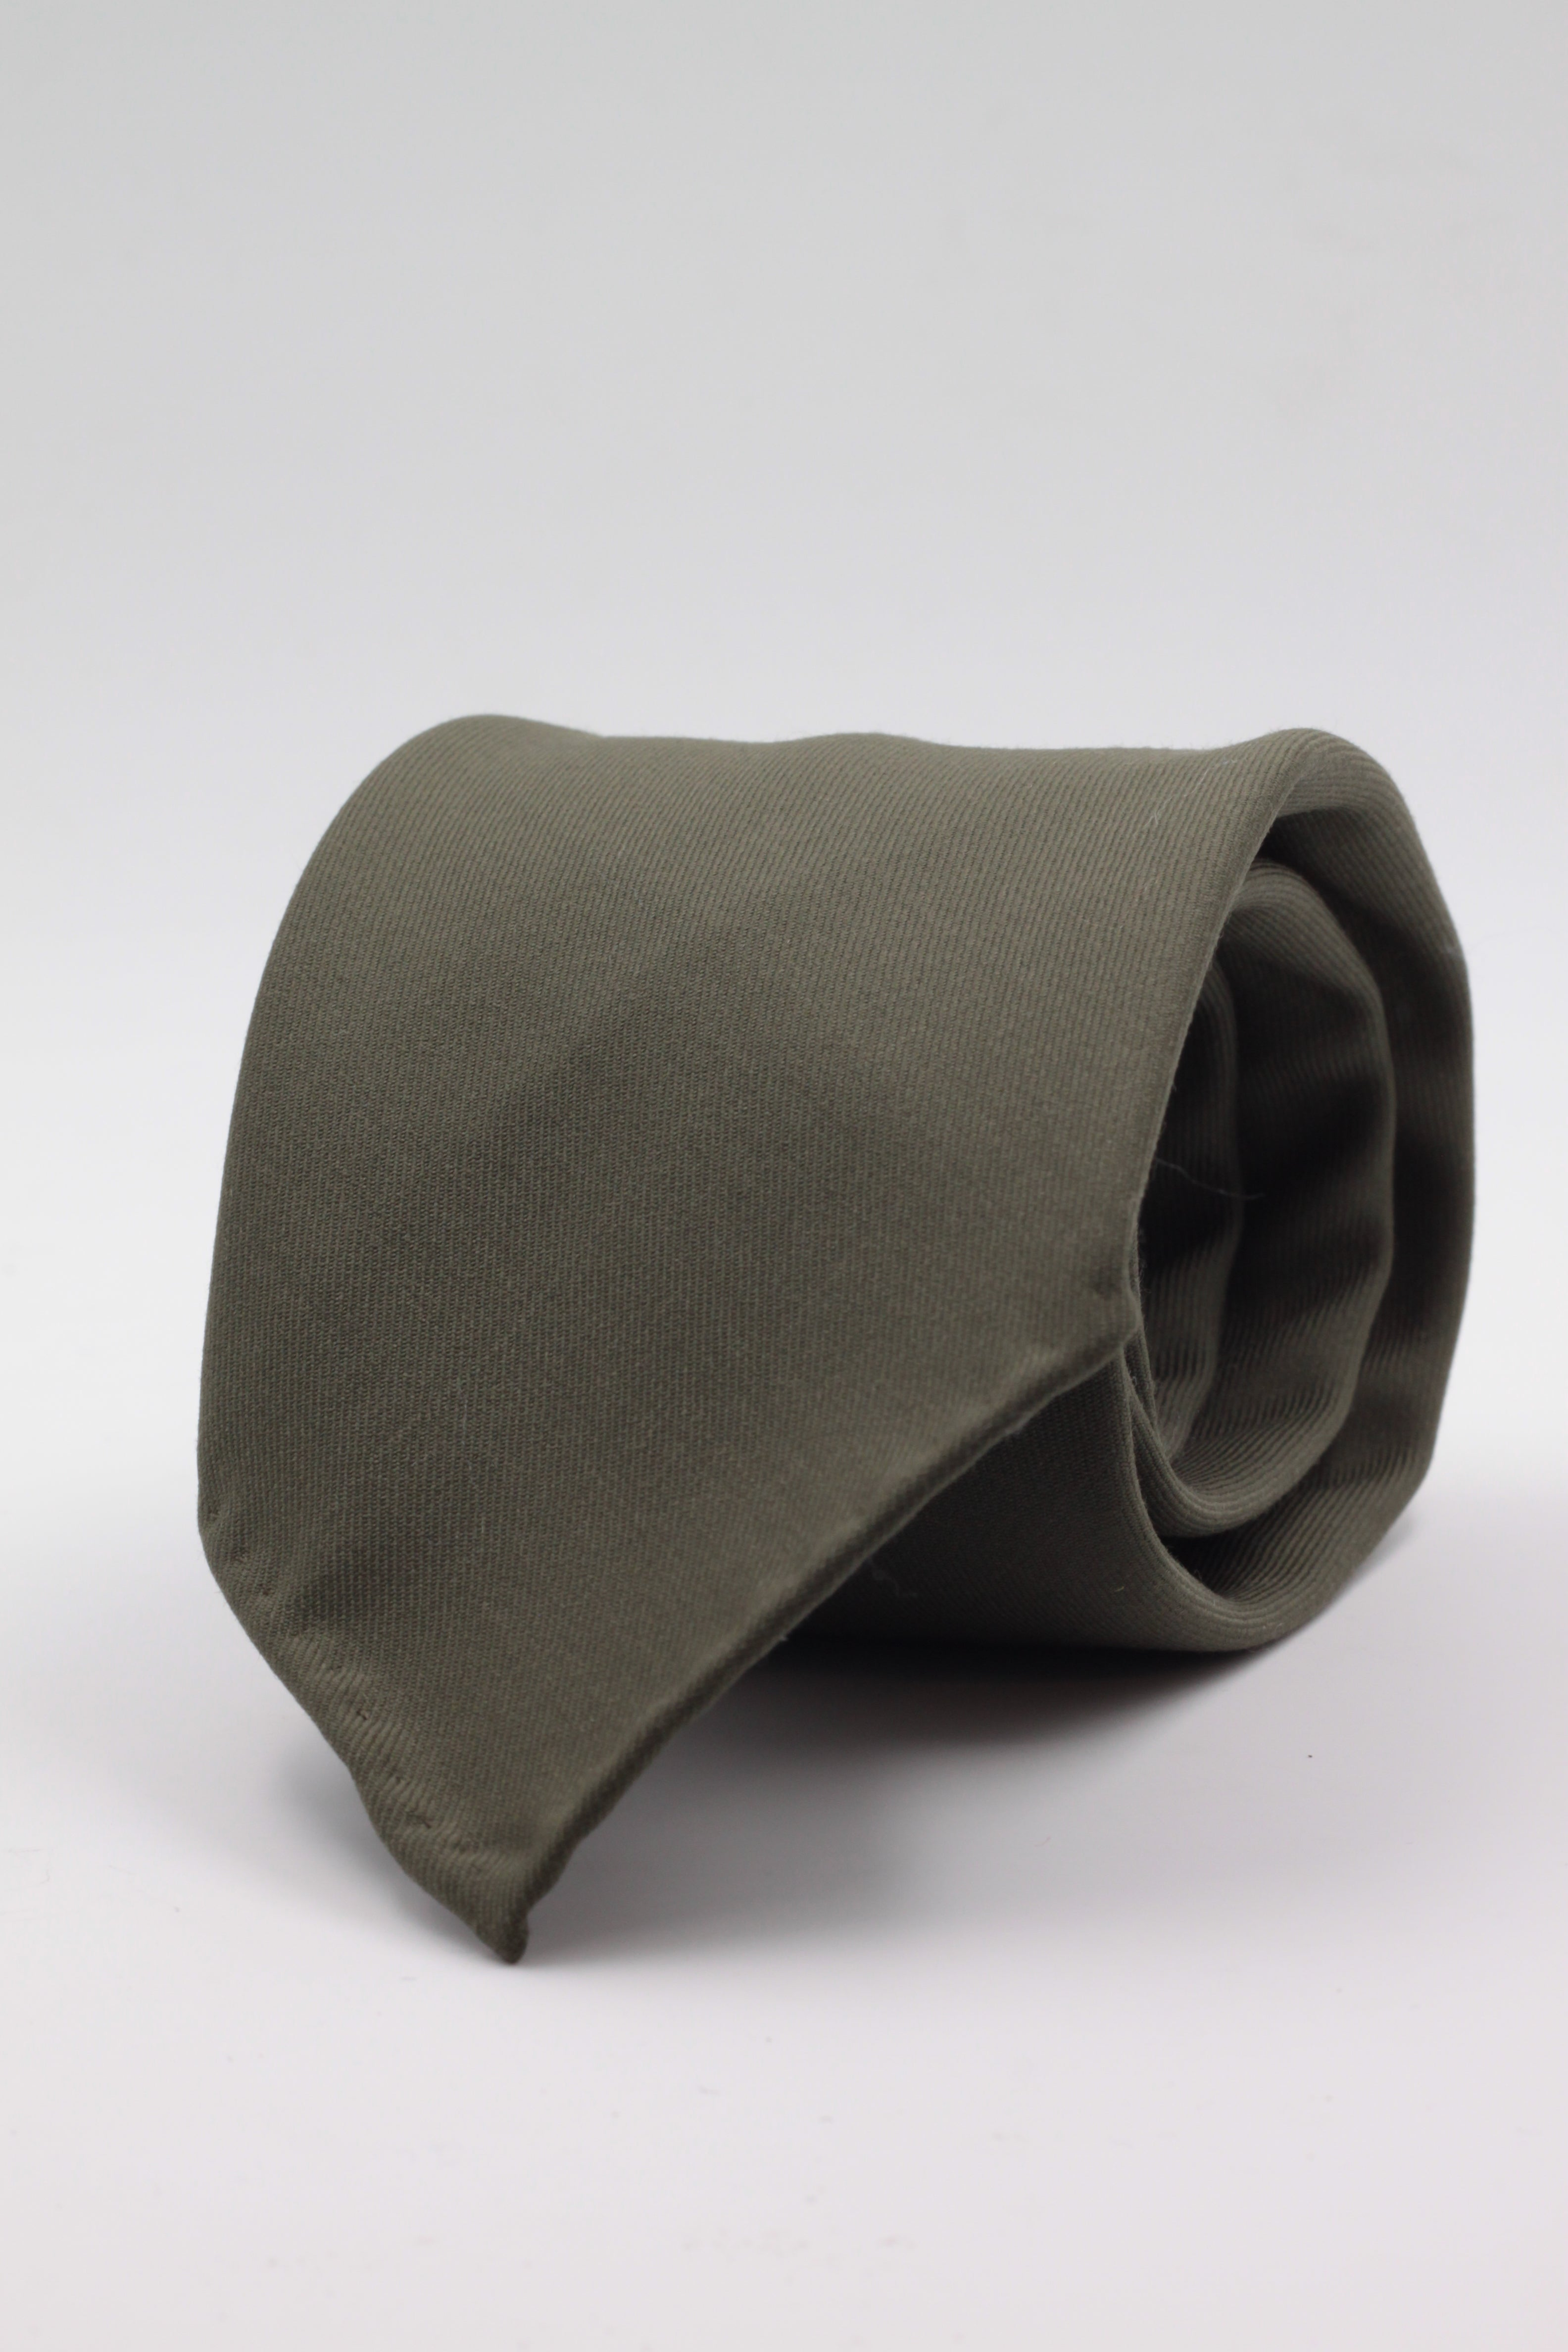 100% Super 140's Worsted Wool Gabardine 9 oz Unlined Hand rolled blades Military green plain tie Handmade in Rome, Italy 8 cm x 150 cm